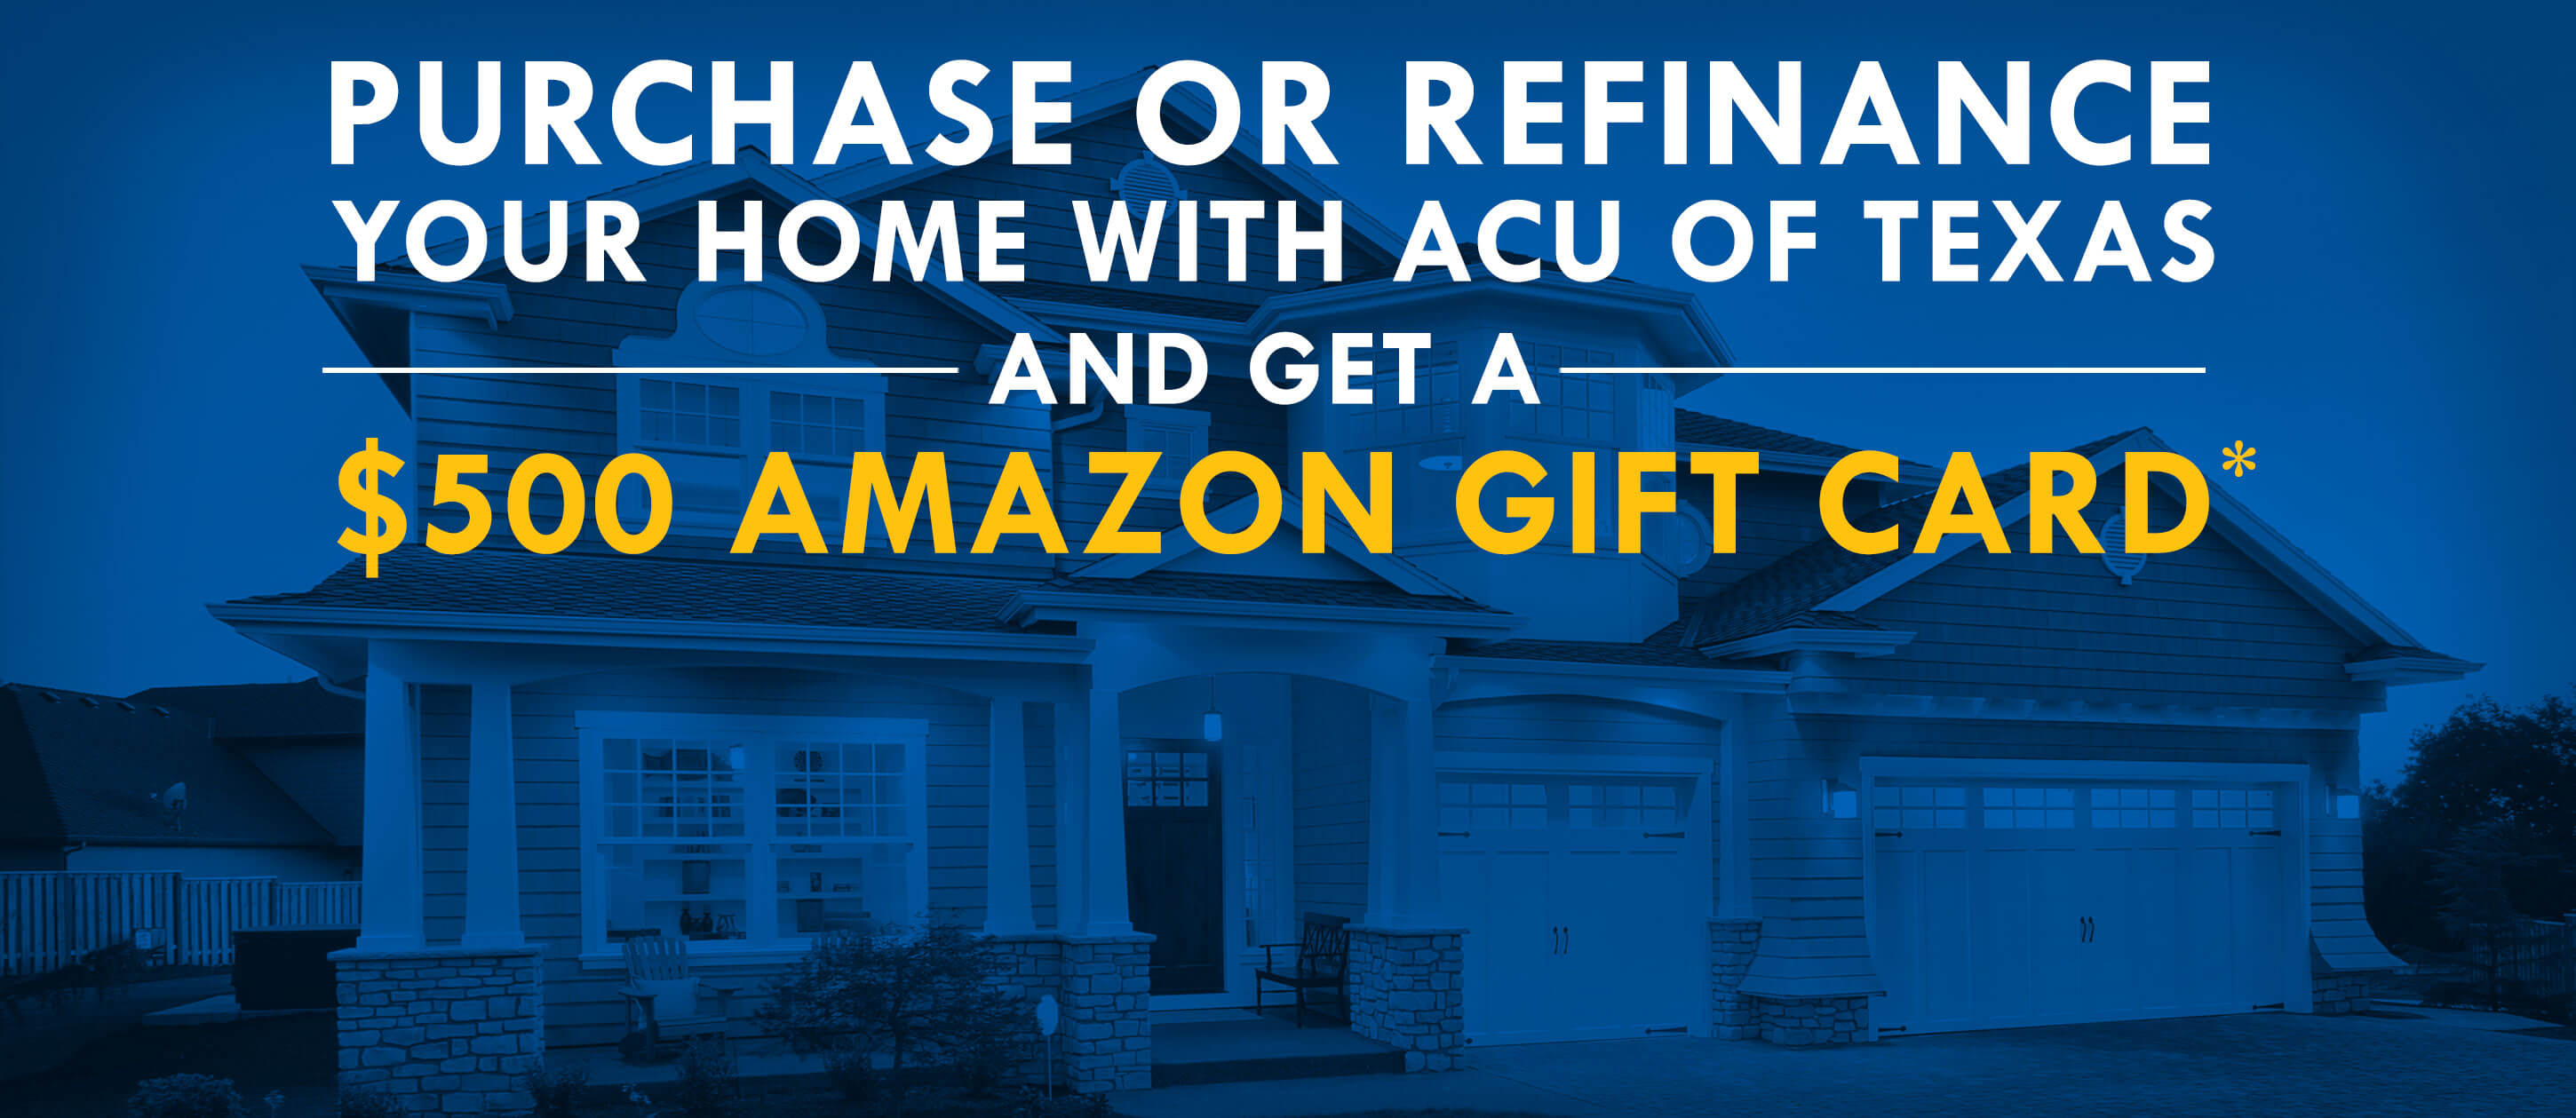 Mortgage $500 Amazon Gift Card Promotion